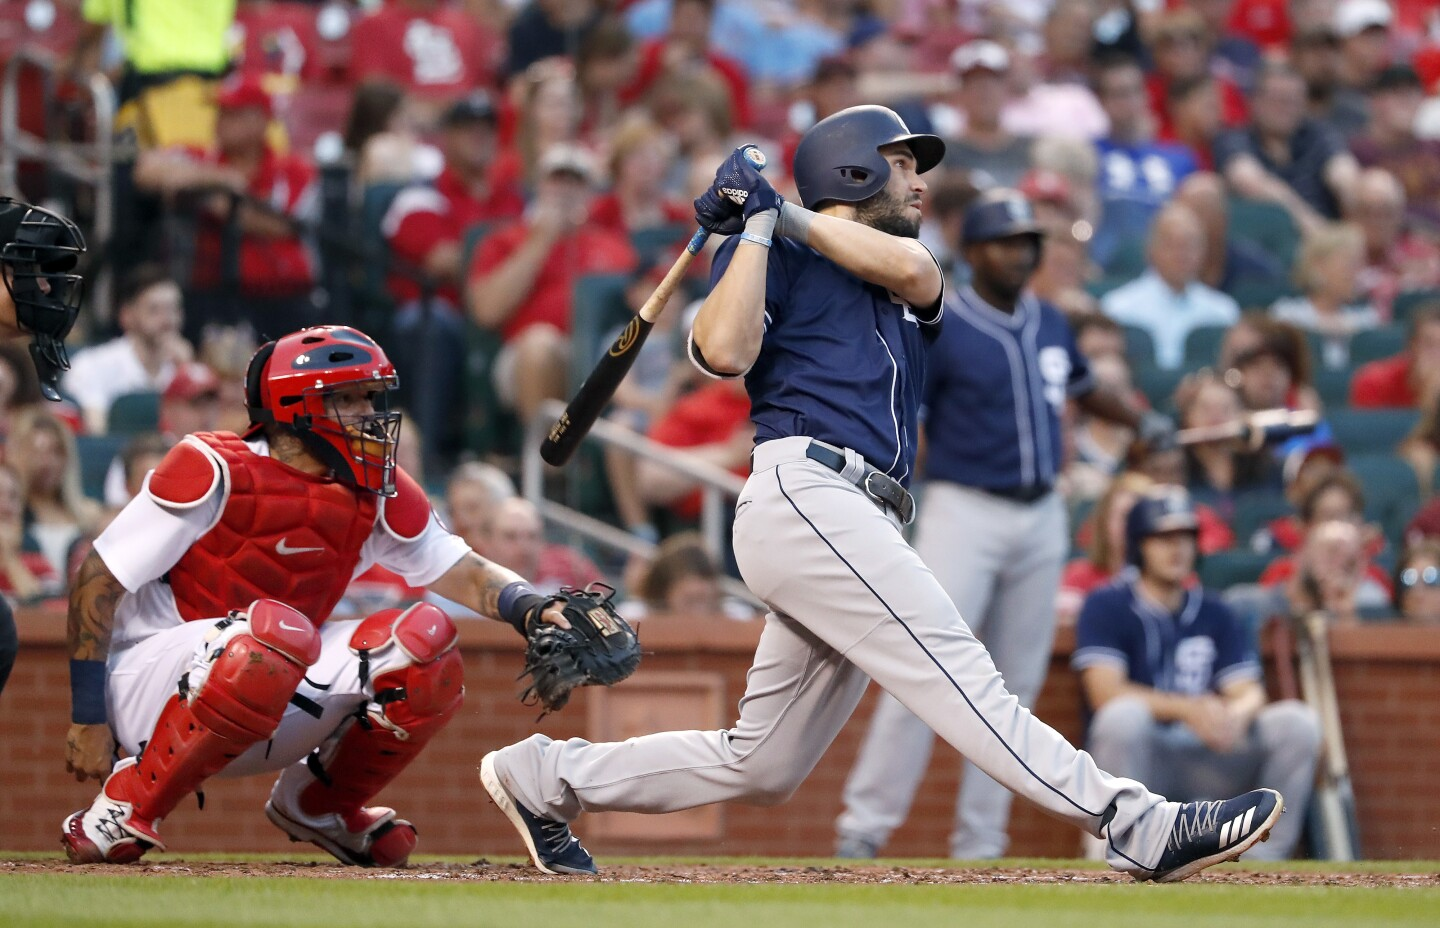 San Diego Padres' Eric Hosmer watches his solo home run in front of St. Louis Cardinals catcher Yadier Molina during the fourth inning of a baseball game Tuesday, June 12, 2018, in St. Louis. (AP Photo/Jeff Roberson)